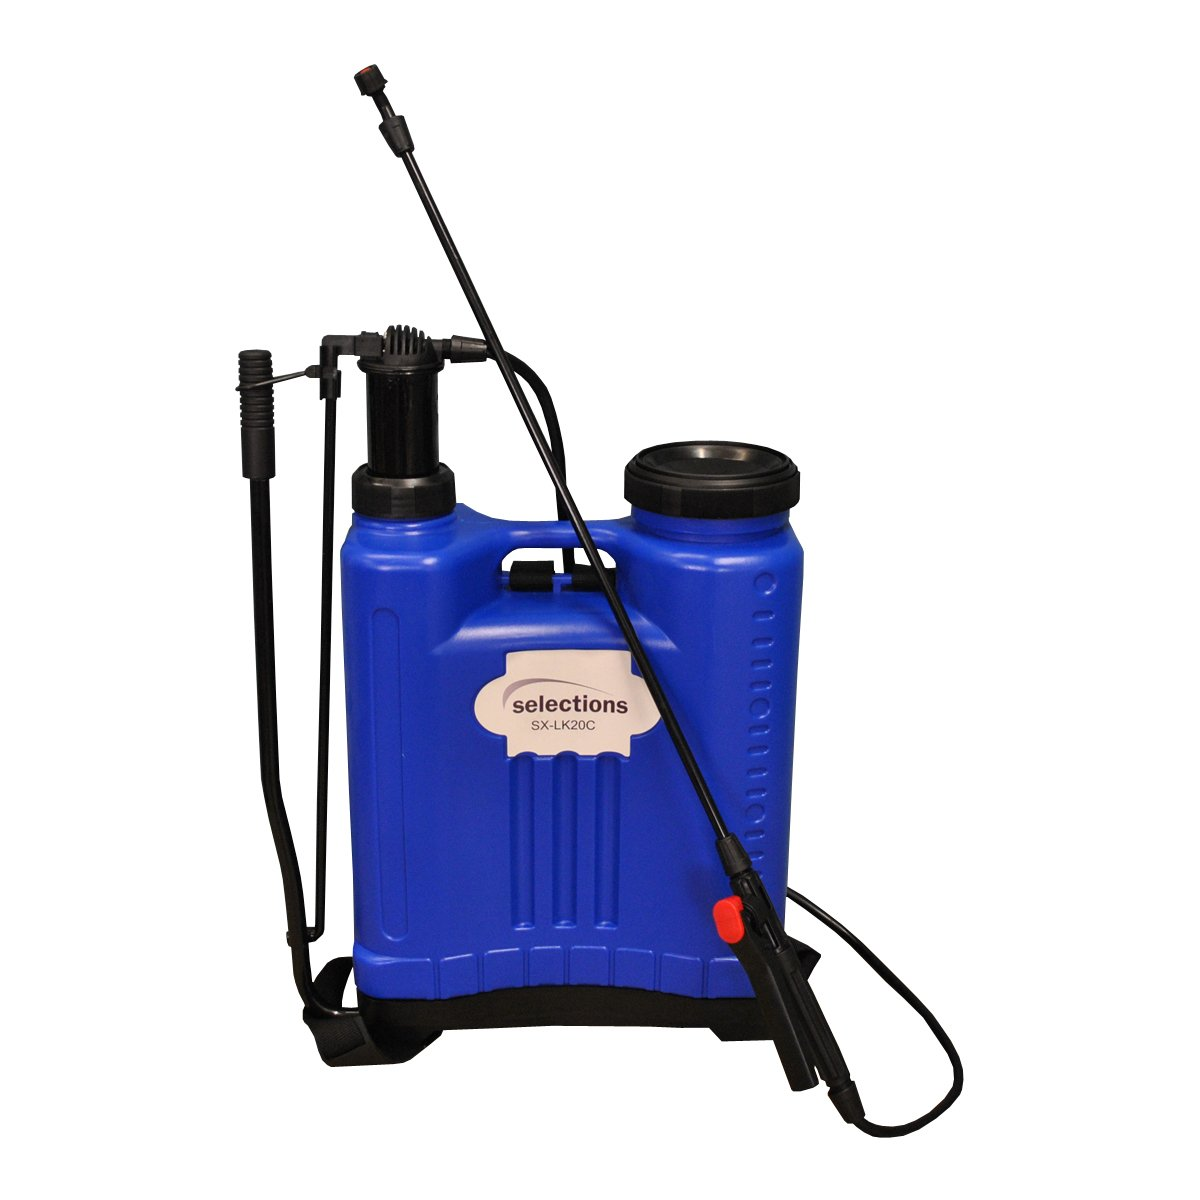 Backpack Pressure Sprayer (20 Litre) by Selections